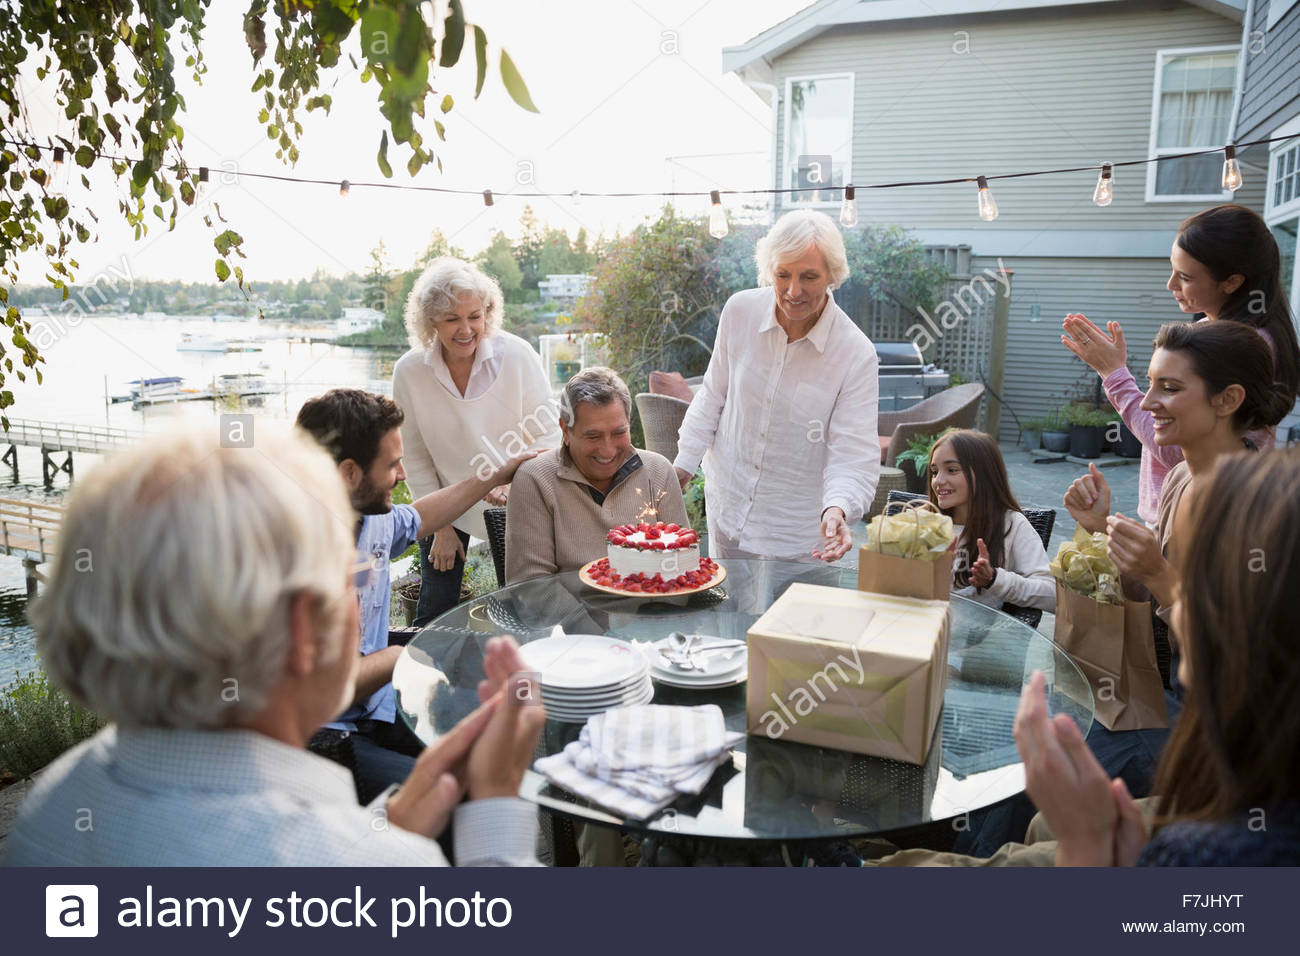 Senior man celebrating birthday family cake lakeside patio - Stock Image